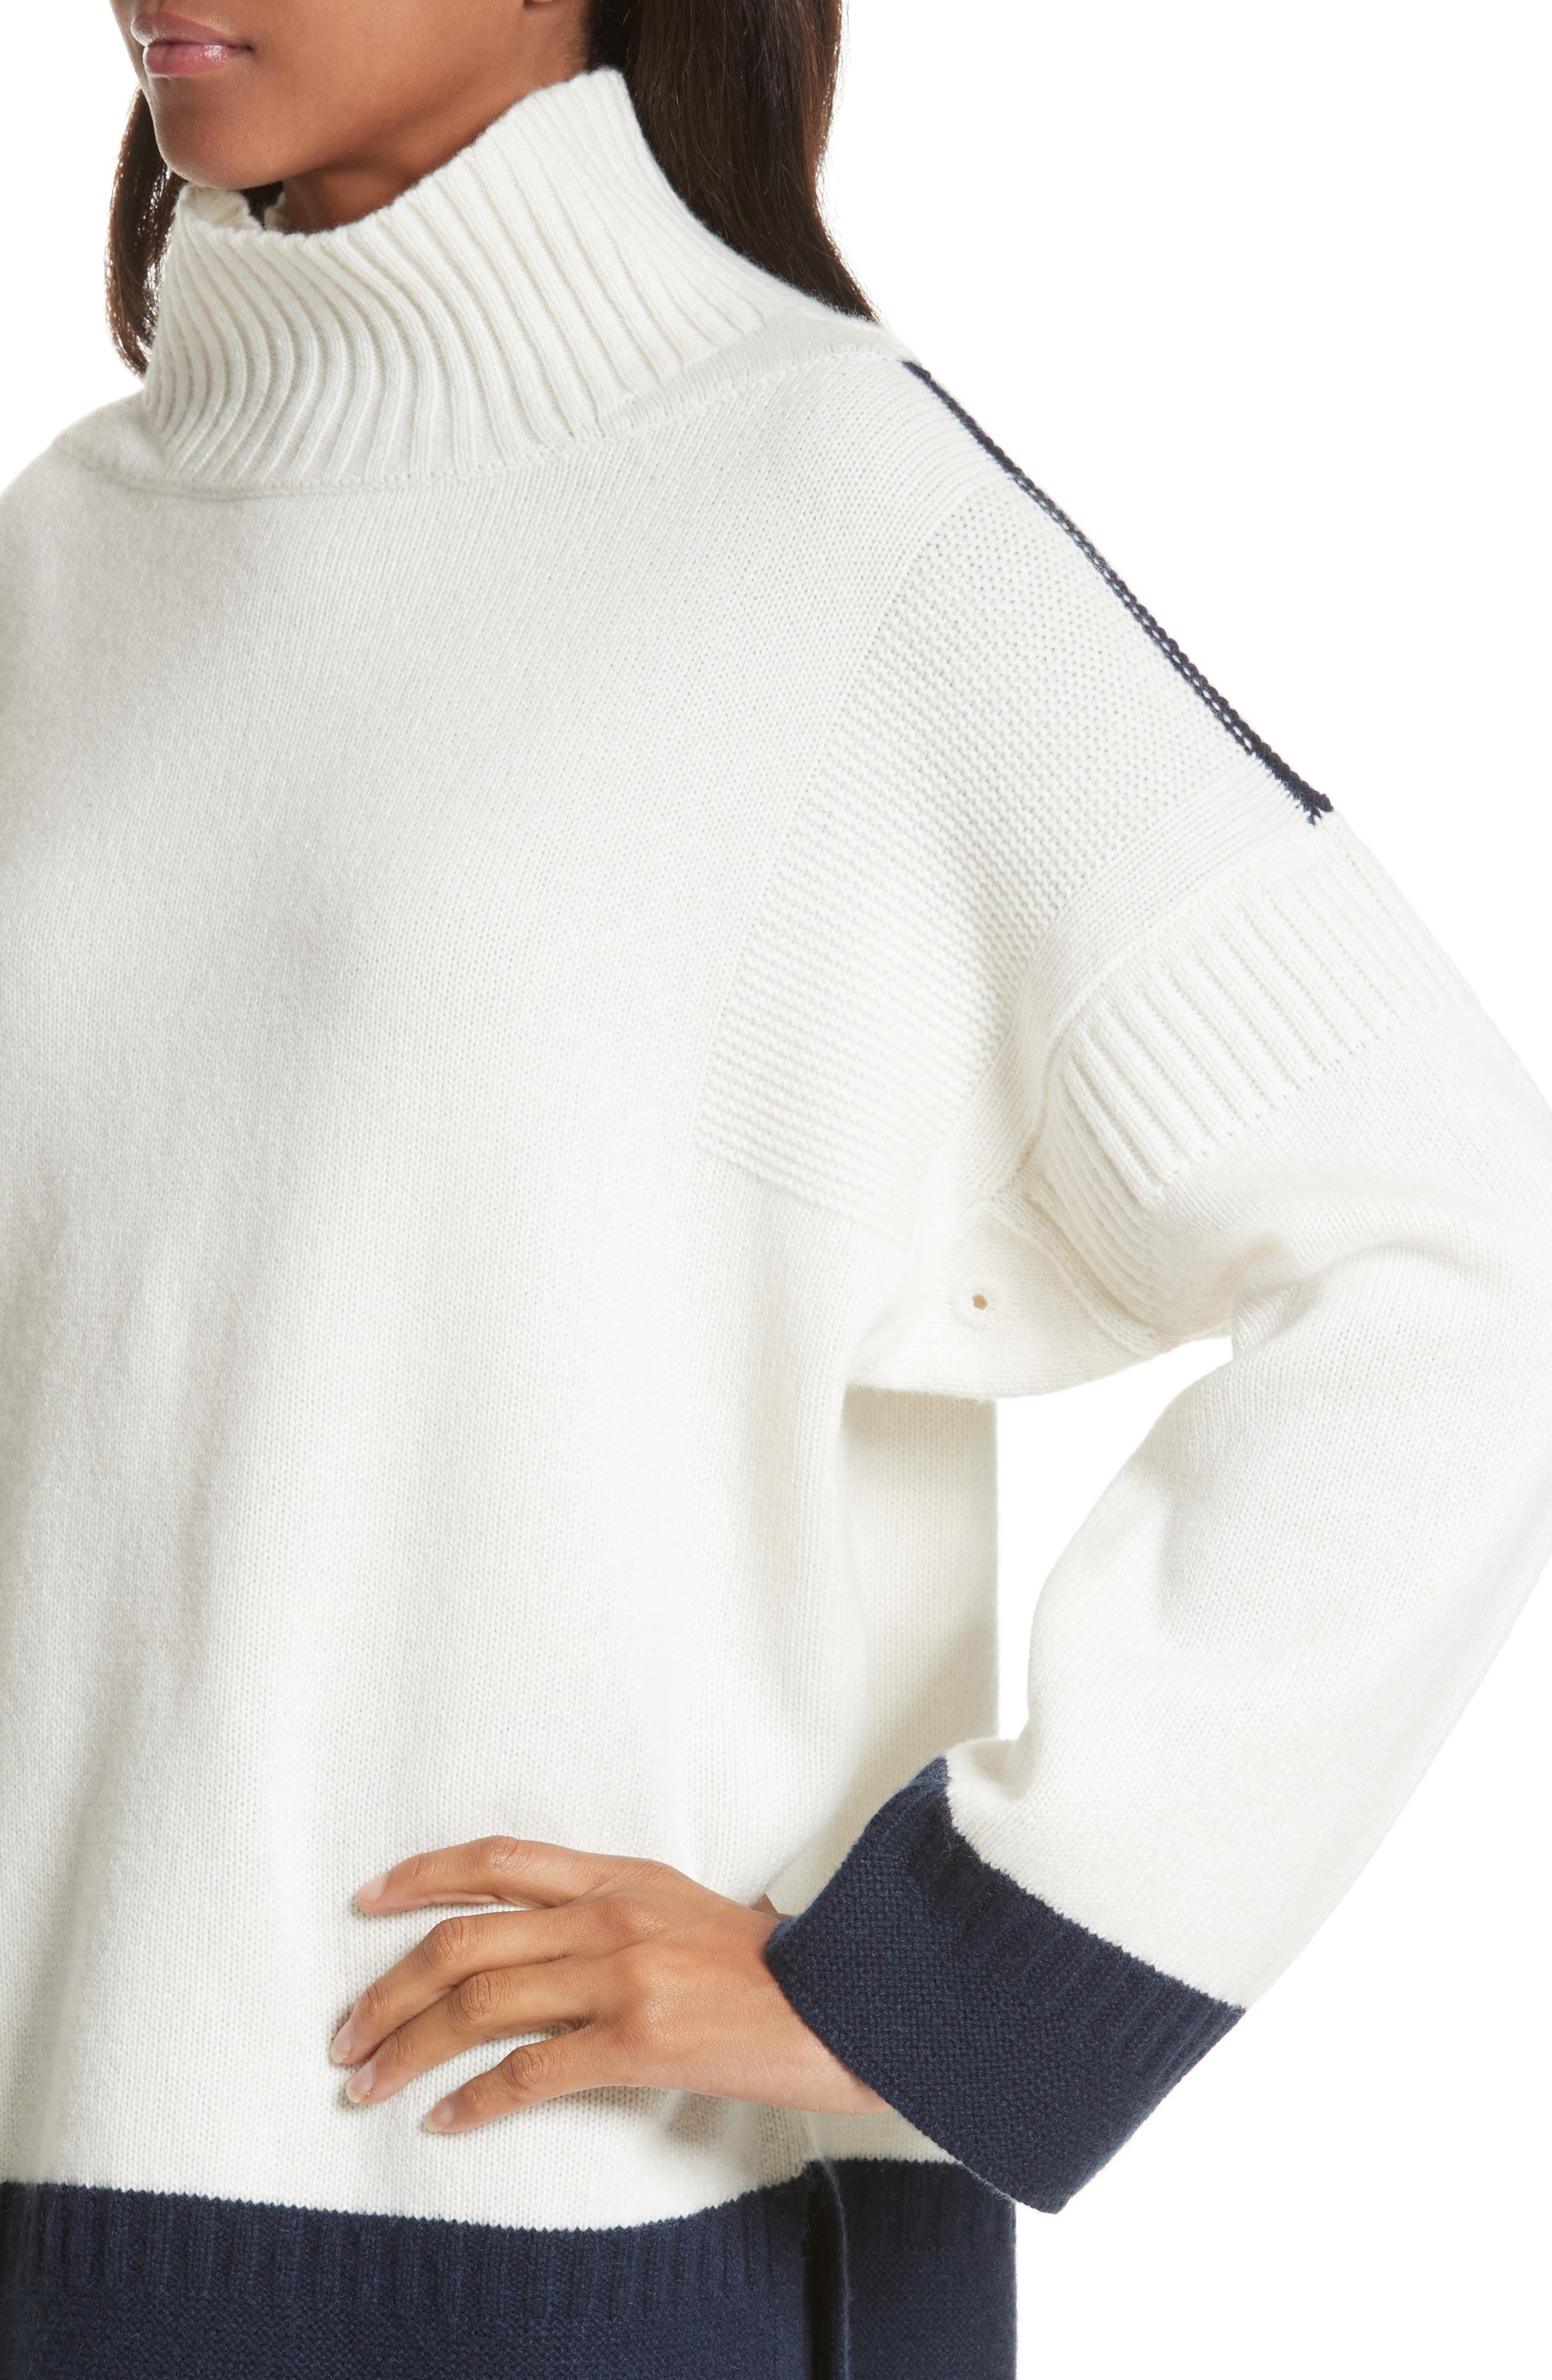 Aubree Funnel Neck Cashmere Sweater,                             Alternate thumbnail 4, color,                             Ivory/Navy